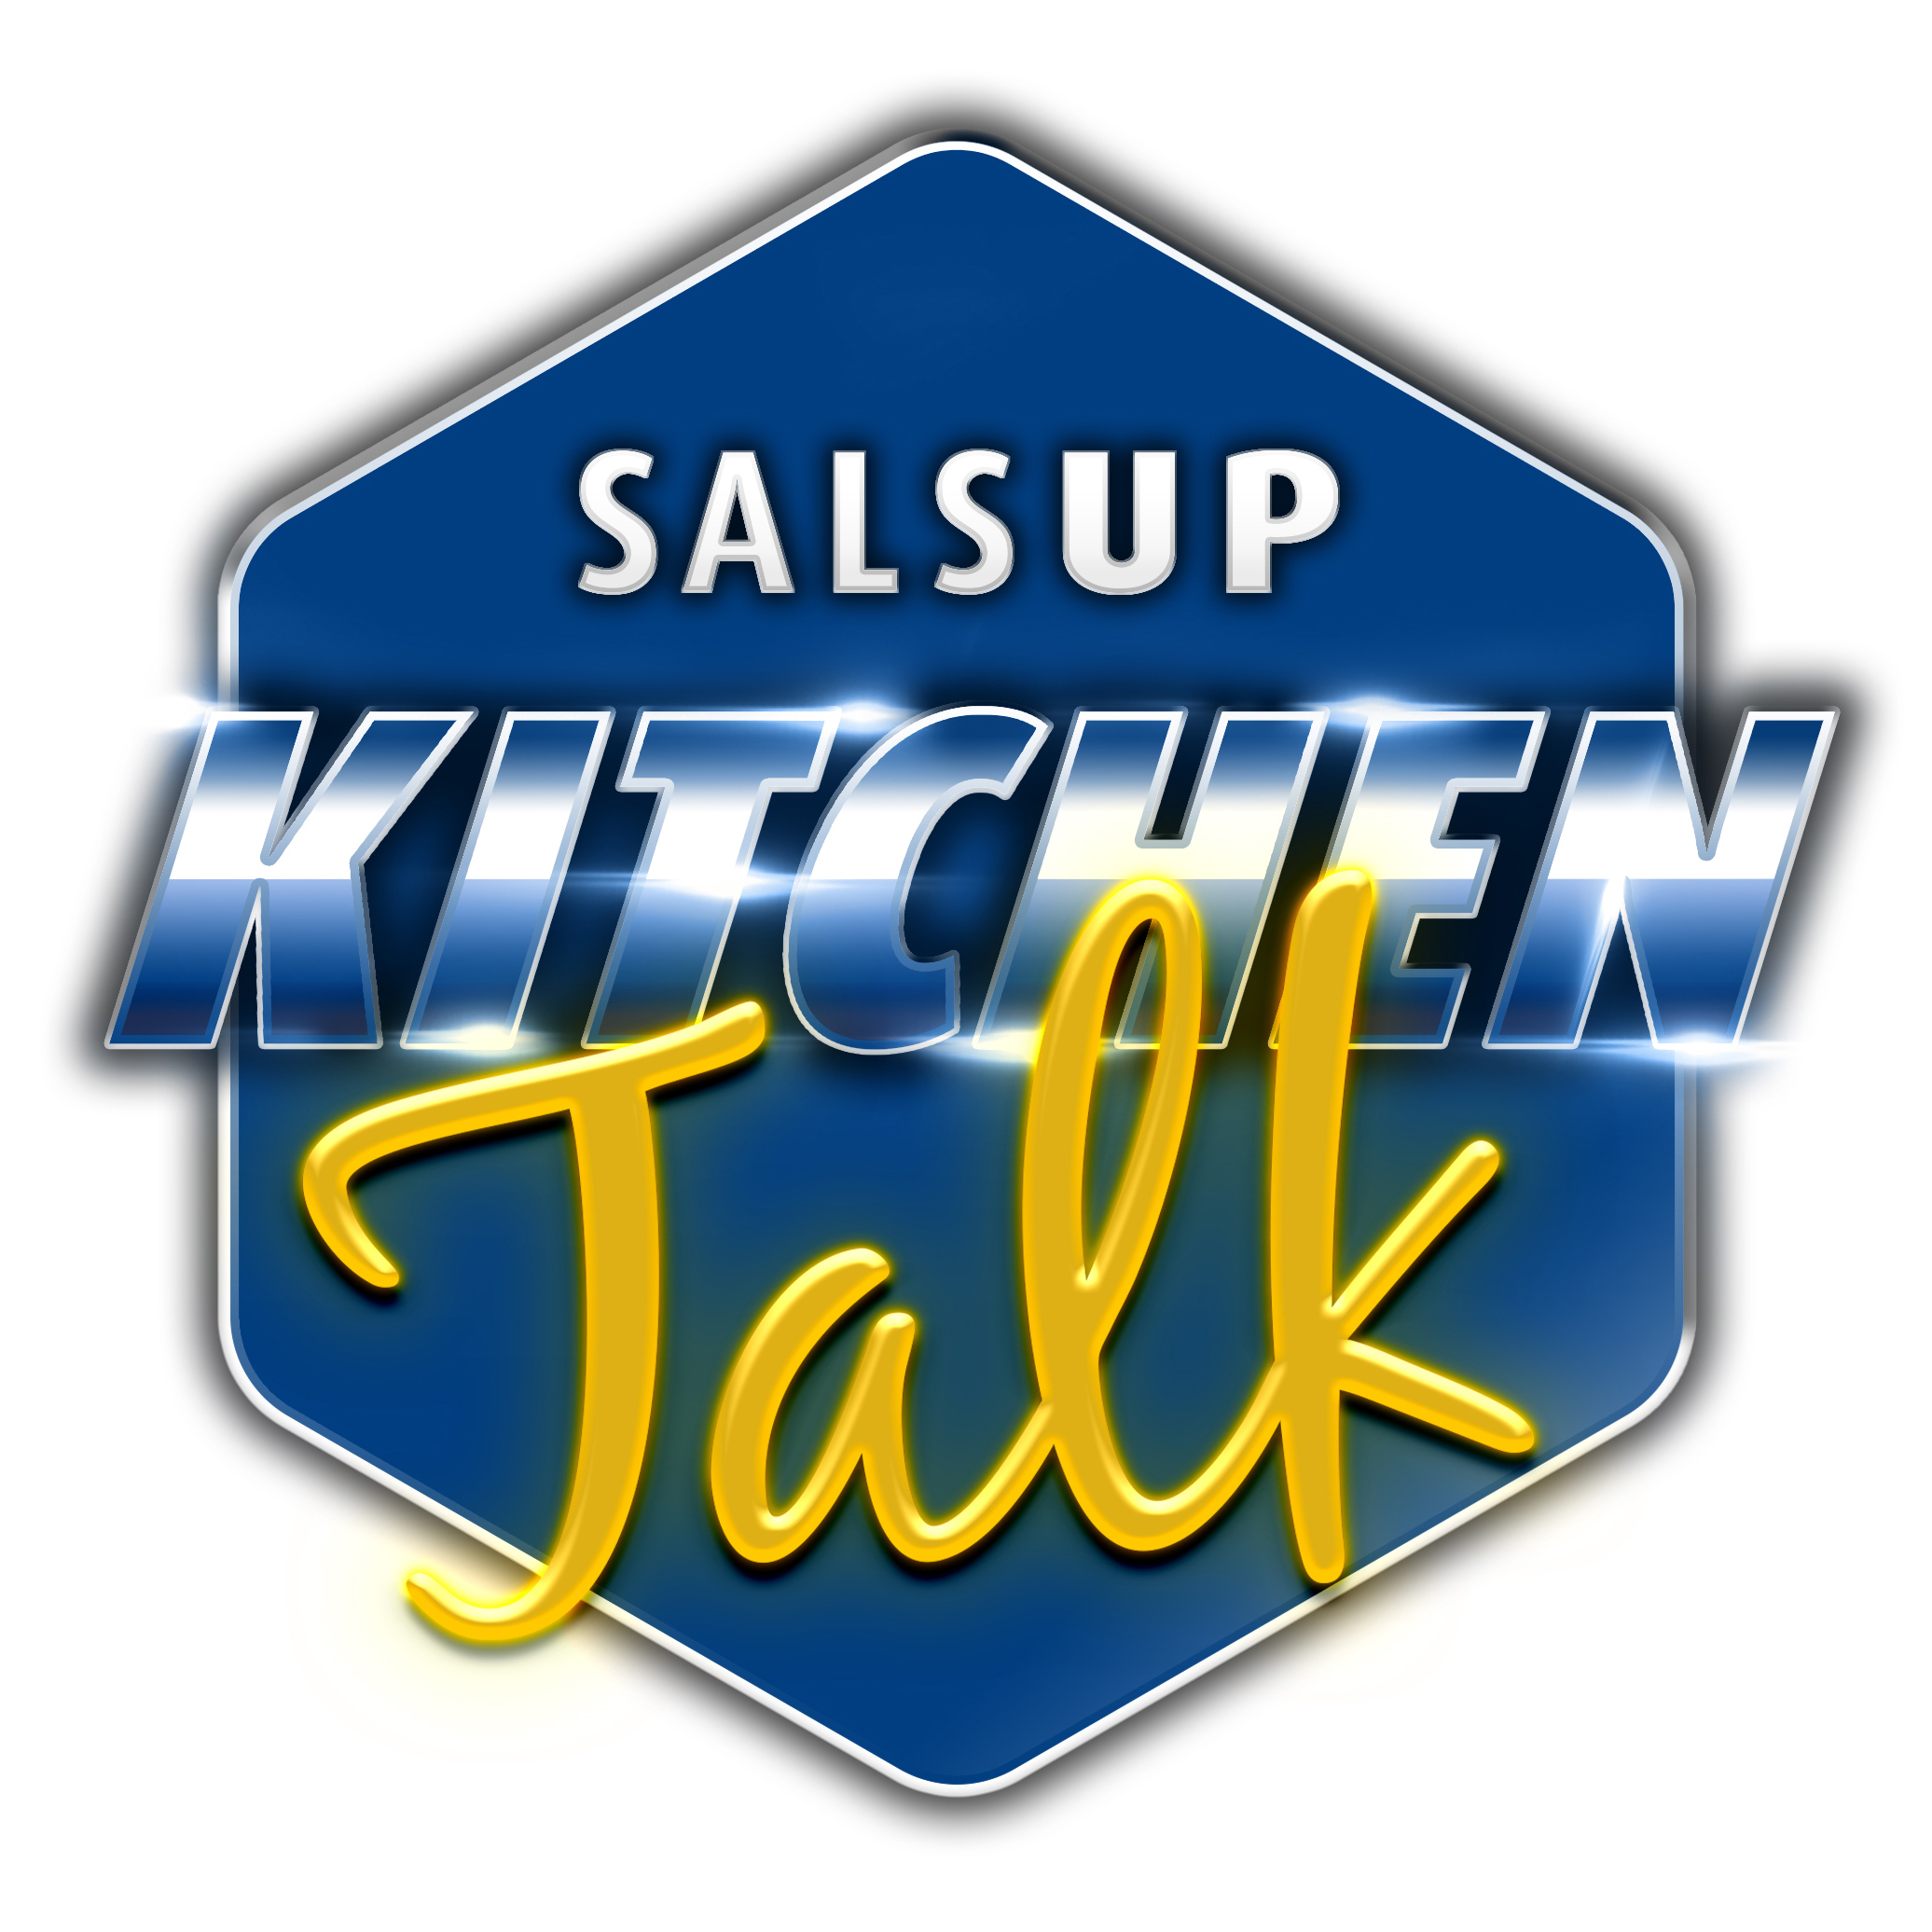 SalsUp Kitchen Talk Logo